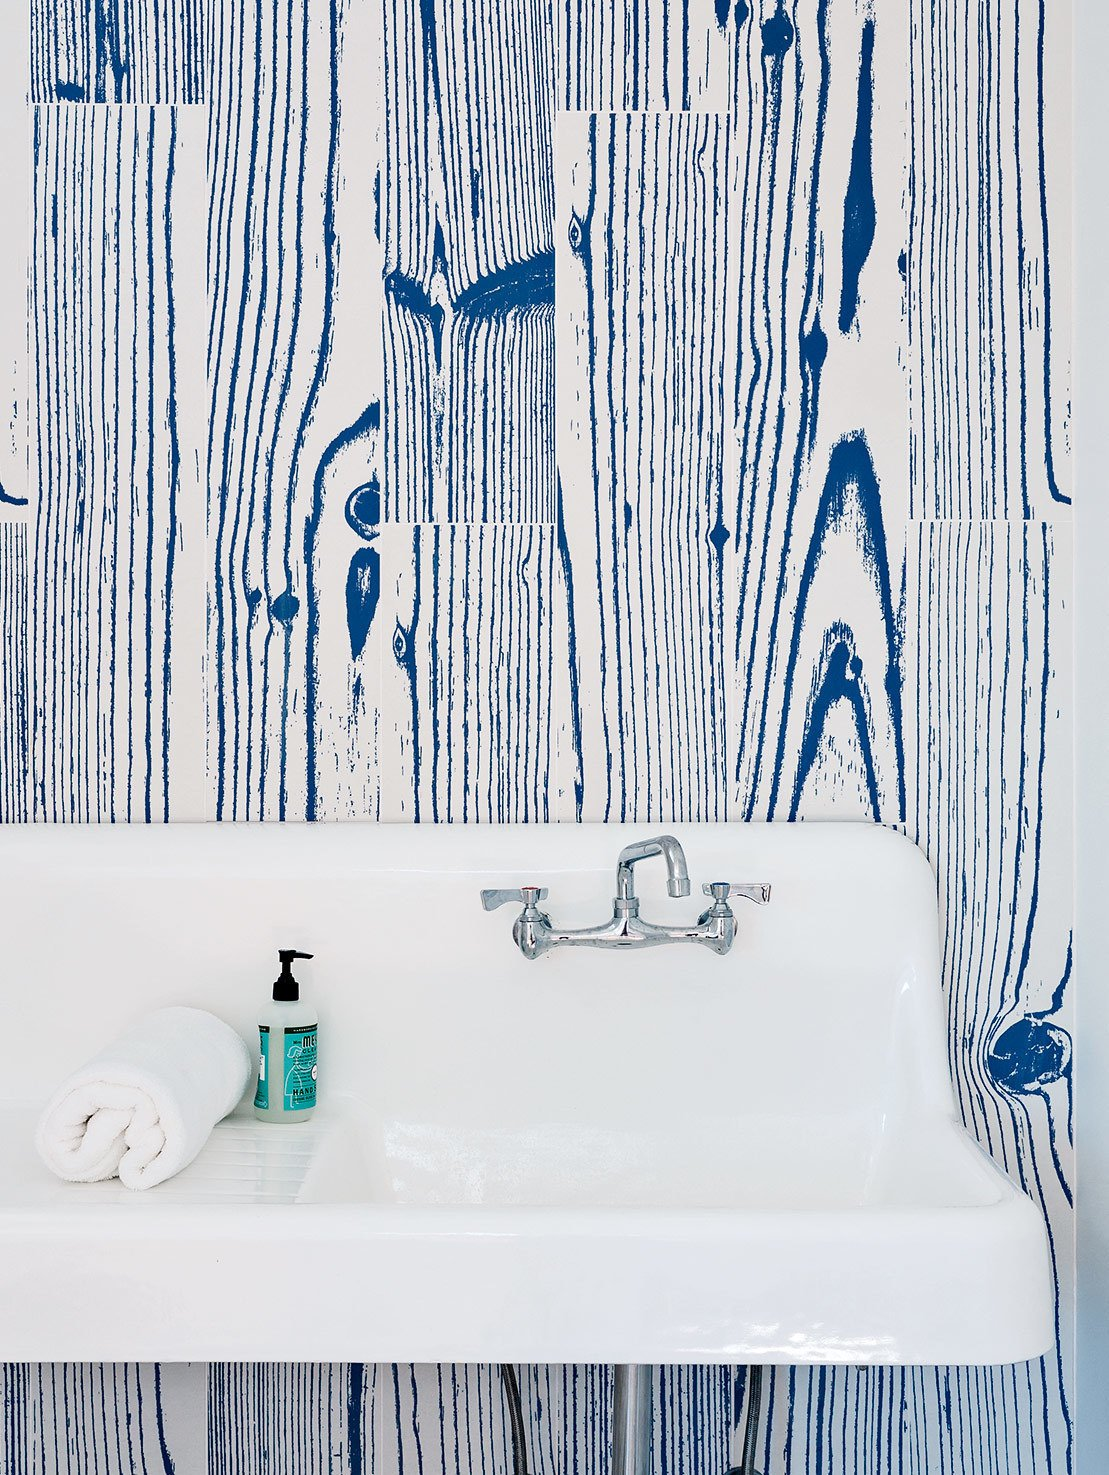 Photo 9 of 20 in 20 Bathrooms With Transformative Tiles - Dwell